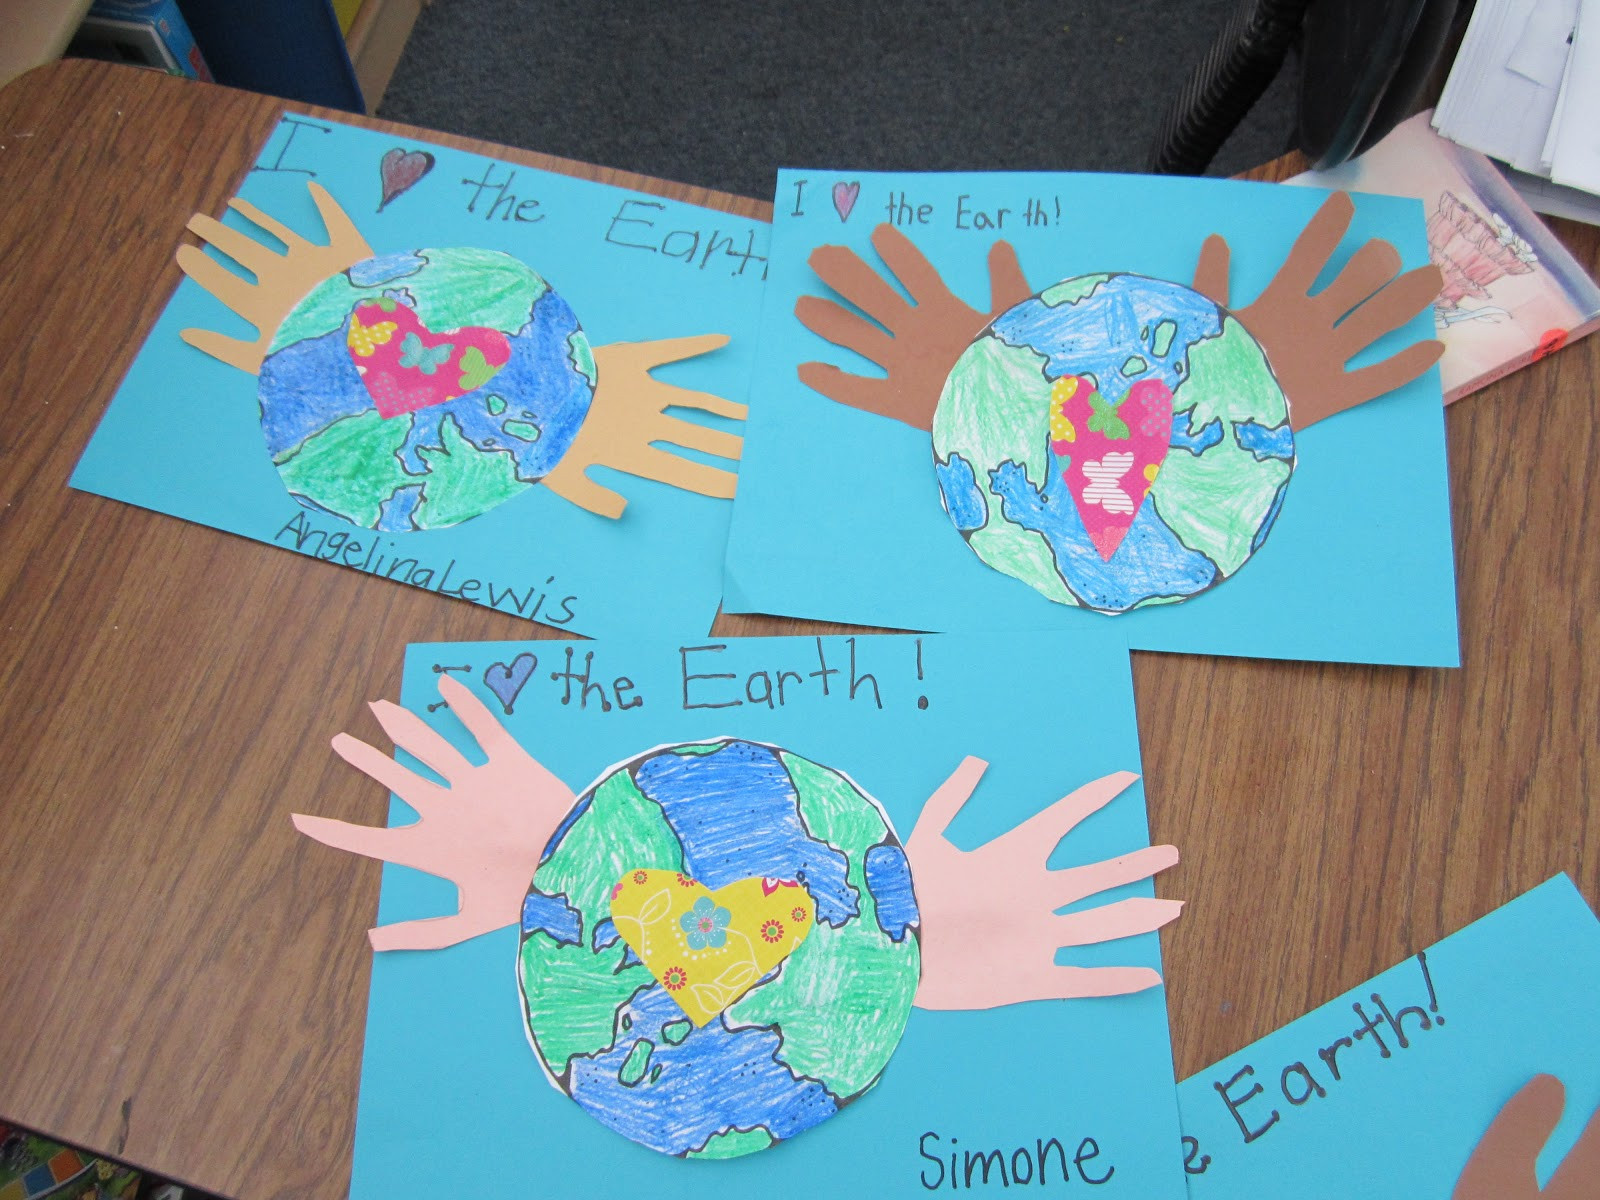 Earth Day Craft Ideas For Preschoolers  Blog Hoppin A veritable potpourri of Earth Day goodness